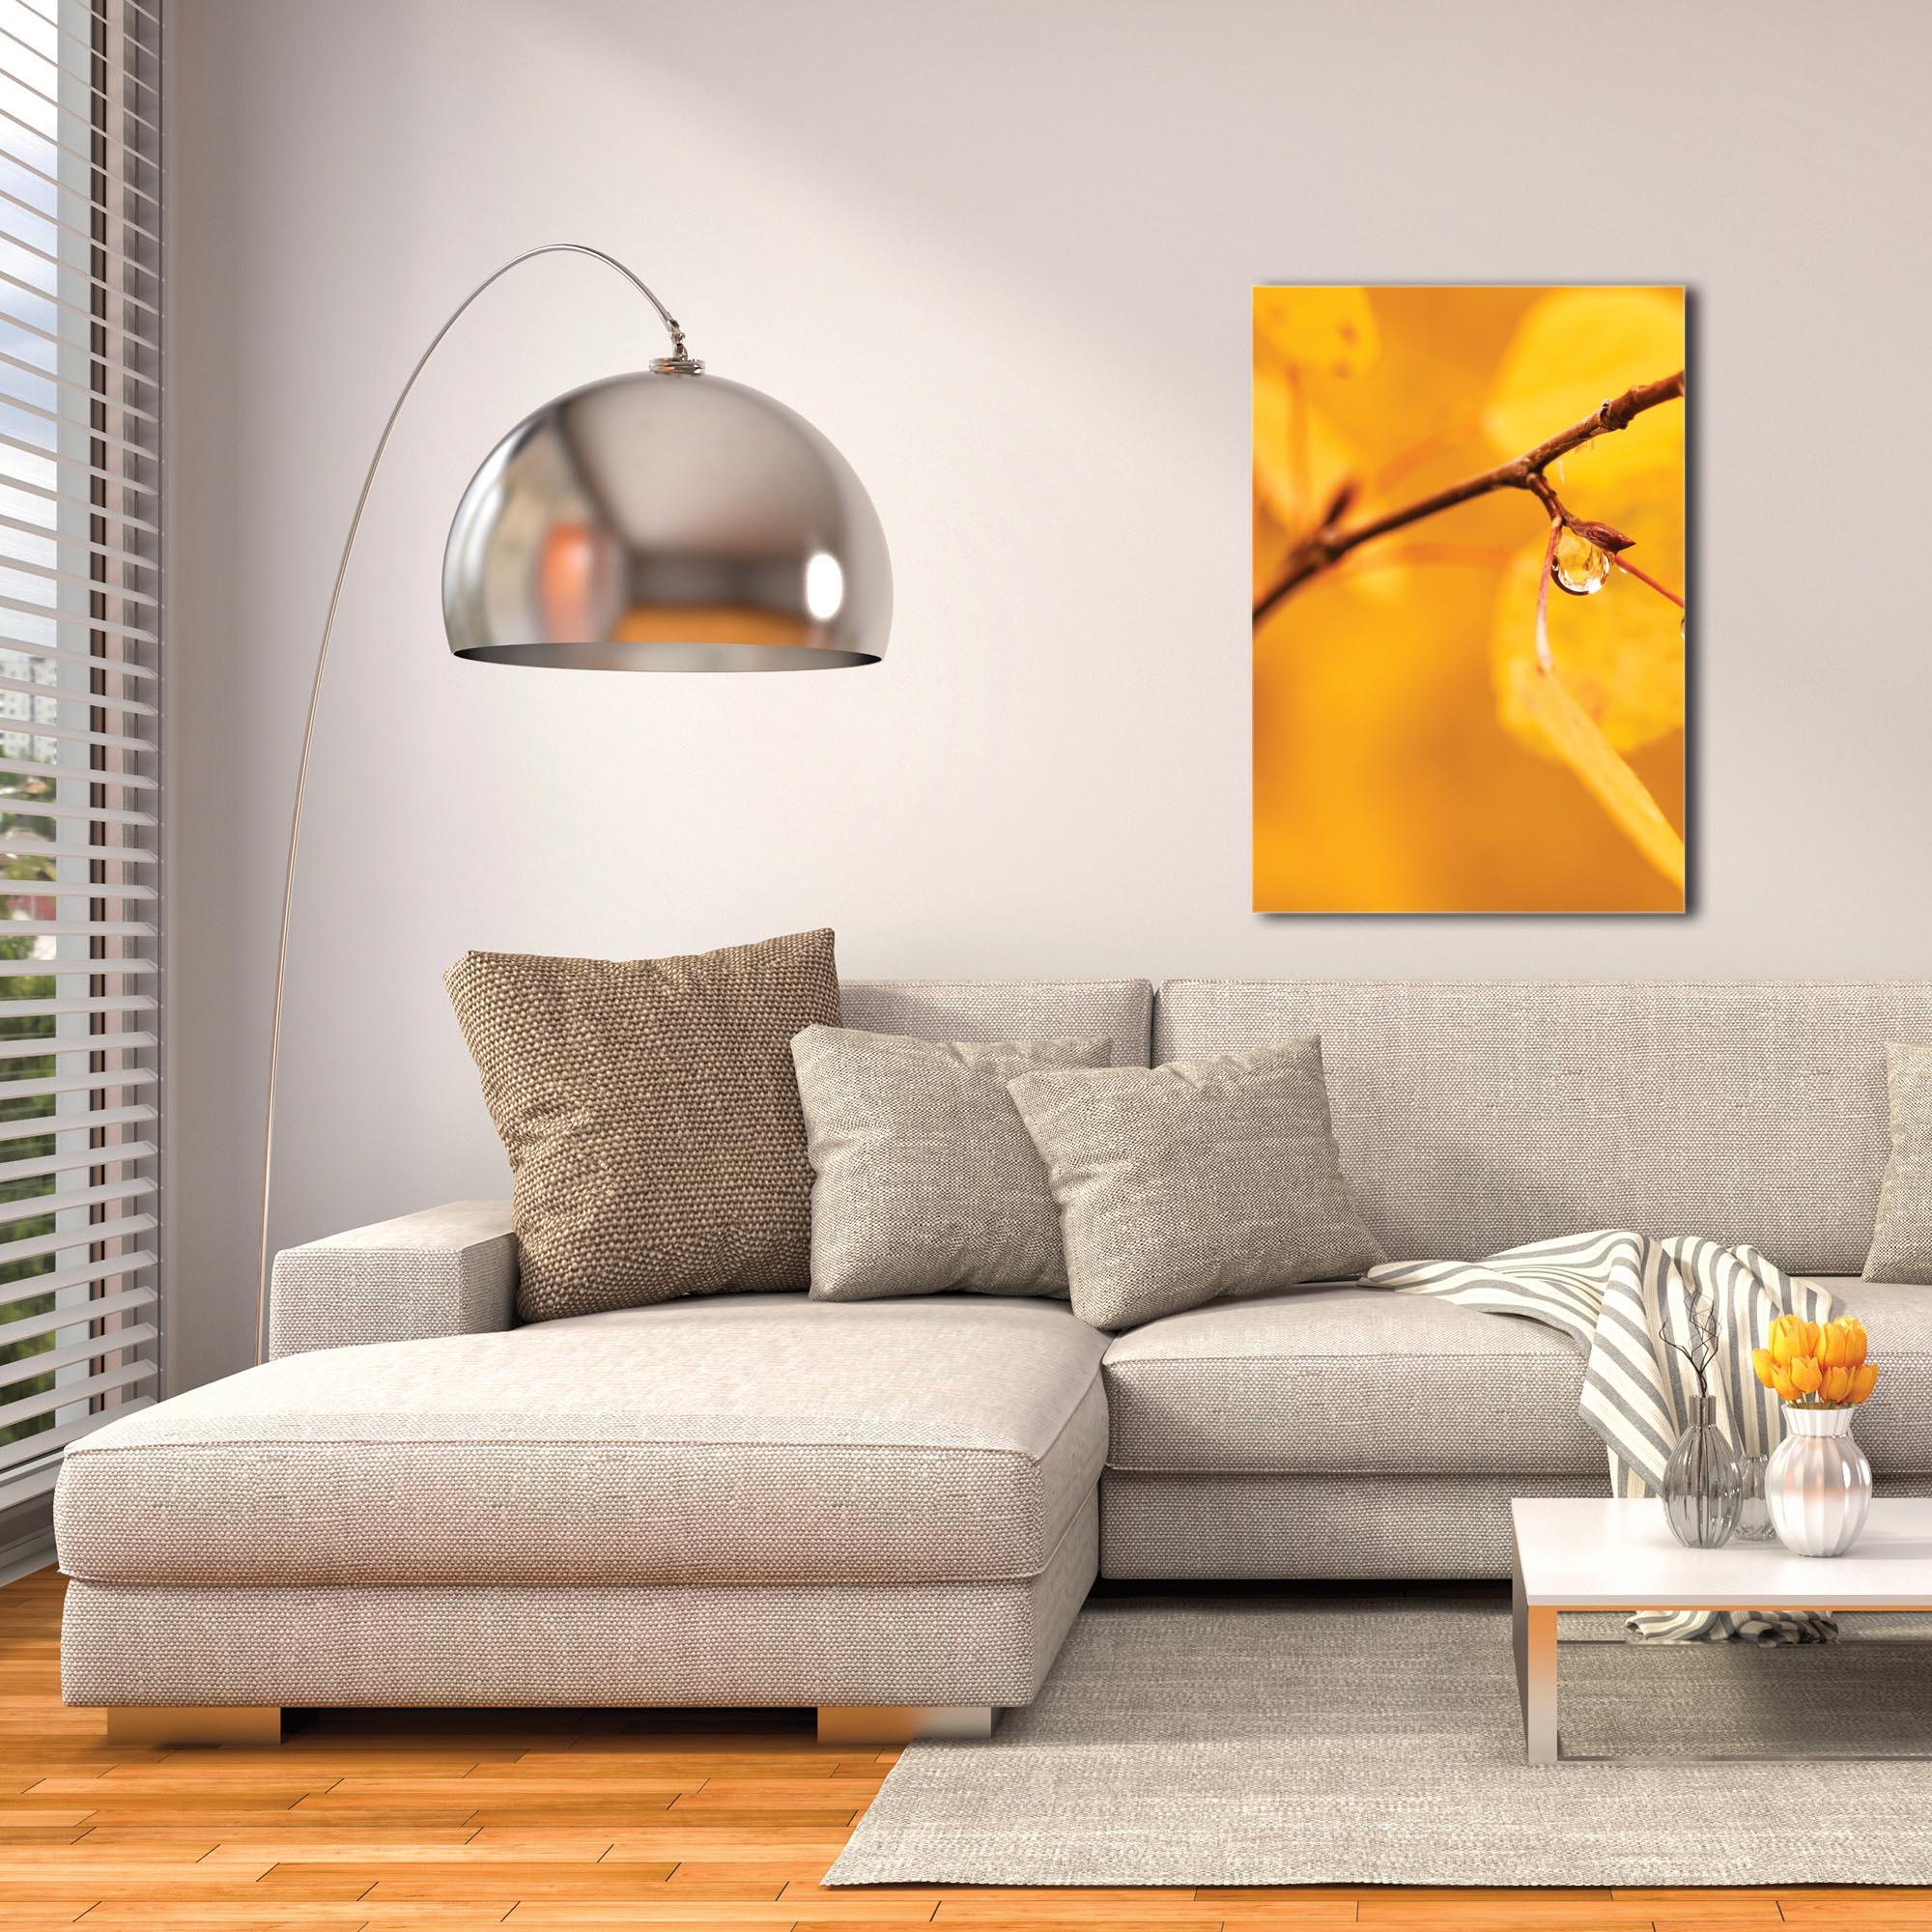 Nature Photography 'Golden Drop' - Autumn Leaves Art on Metal or Plexiglass - Image 3